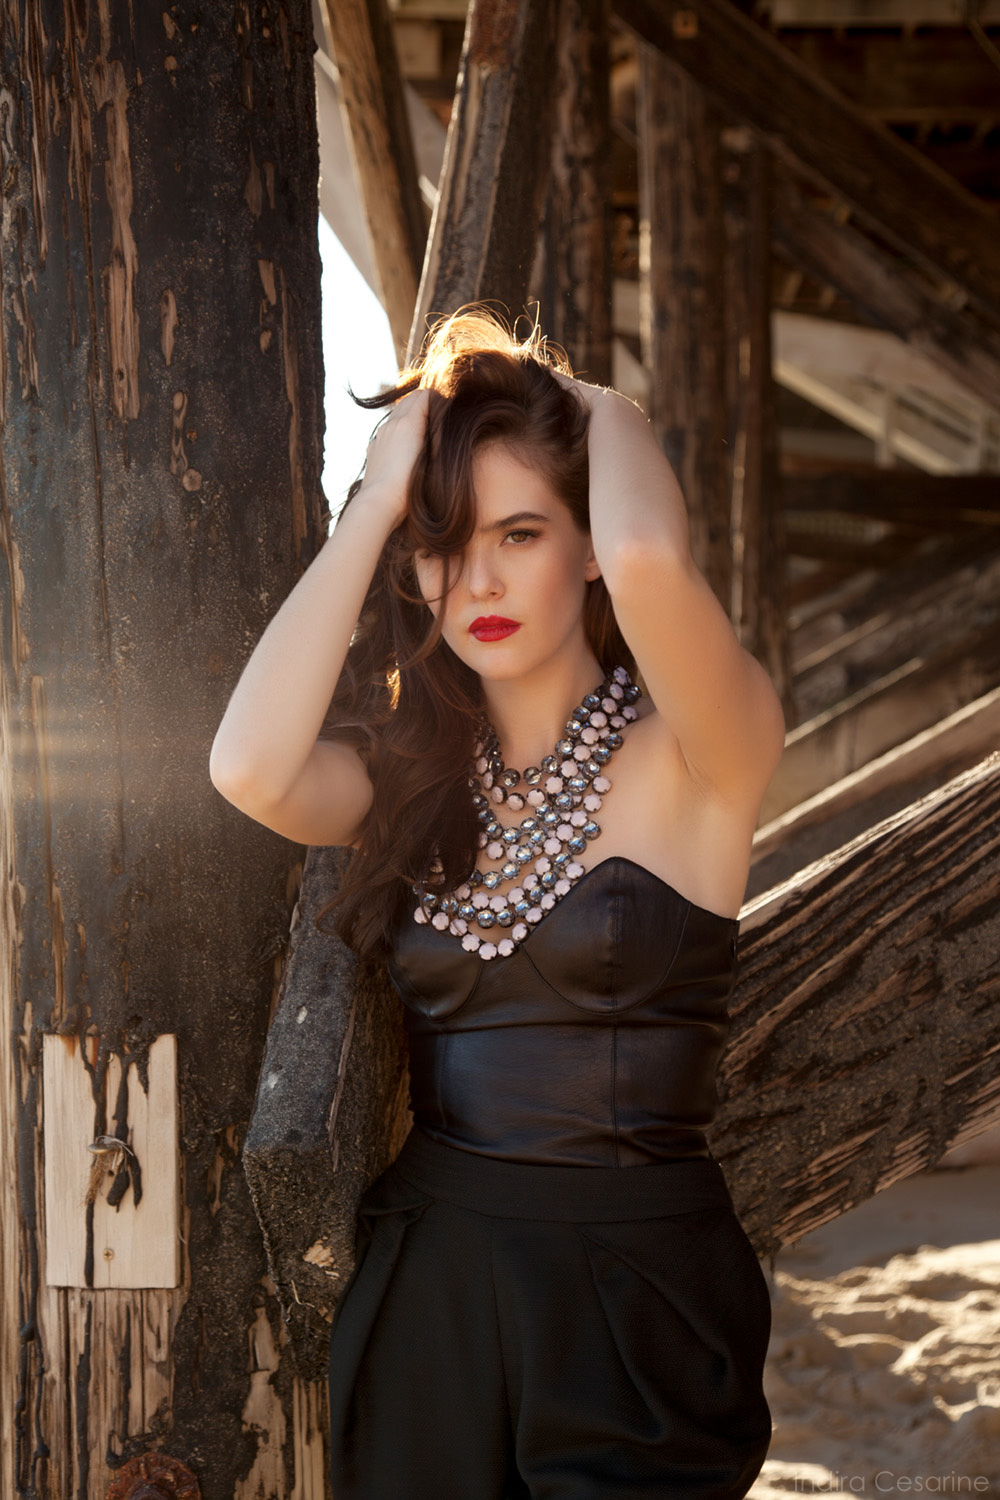 Zoey-Deutch-Photography-by-Indira-Cesarine-015.jpg